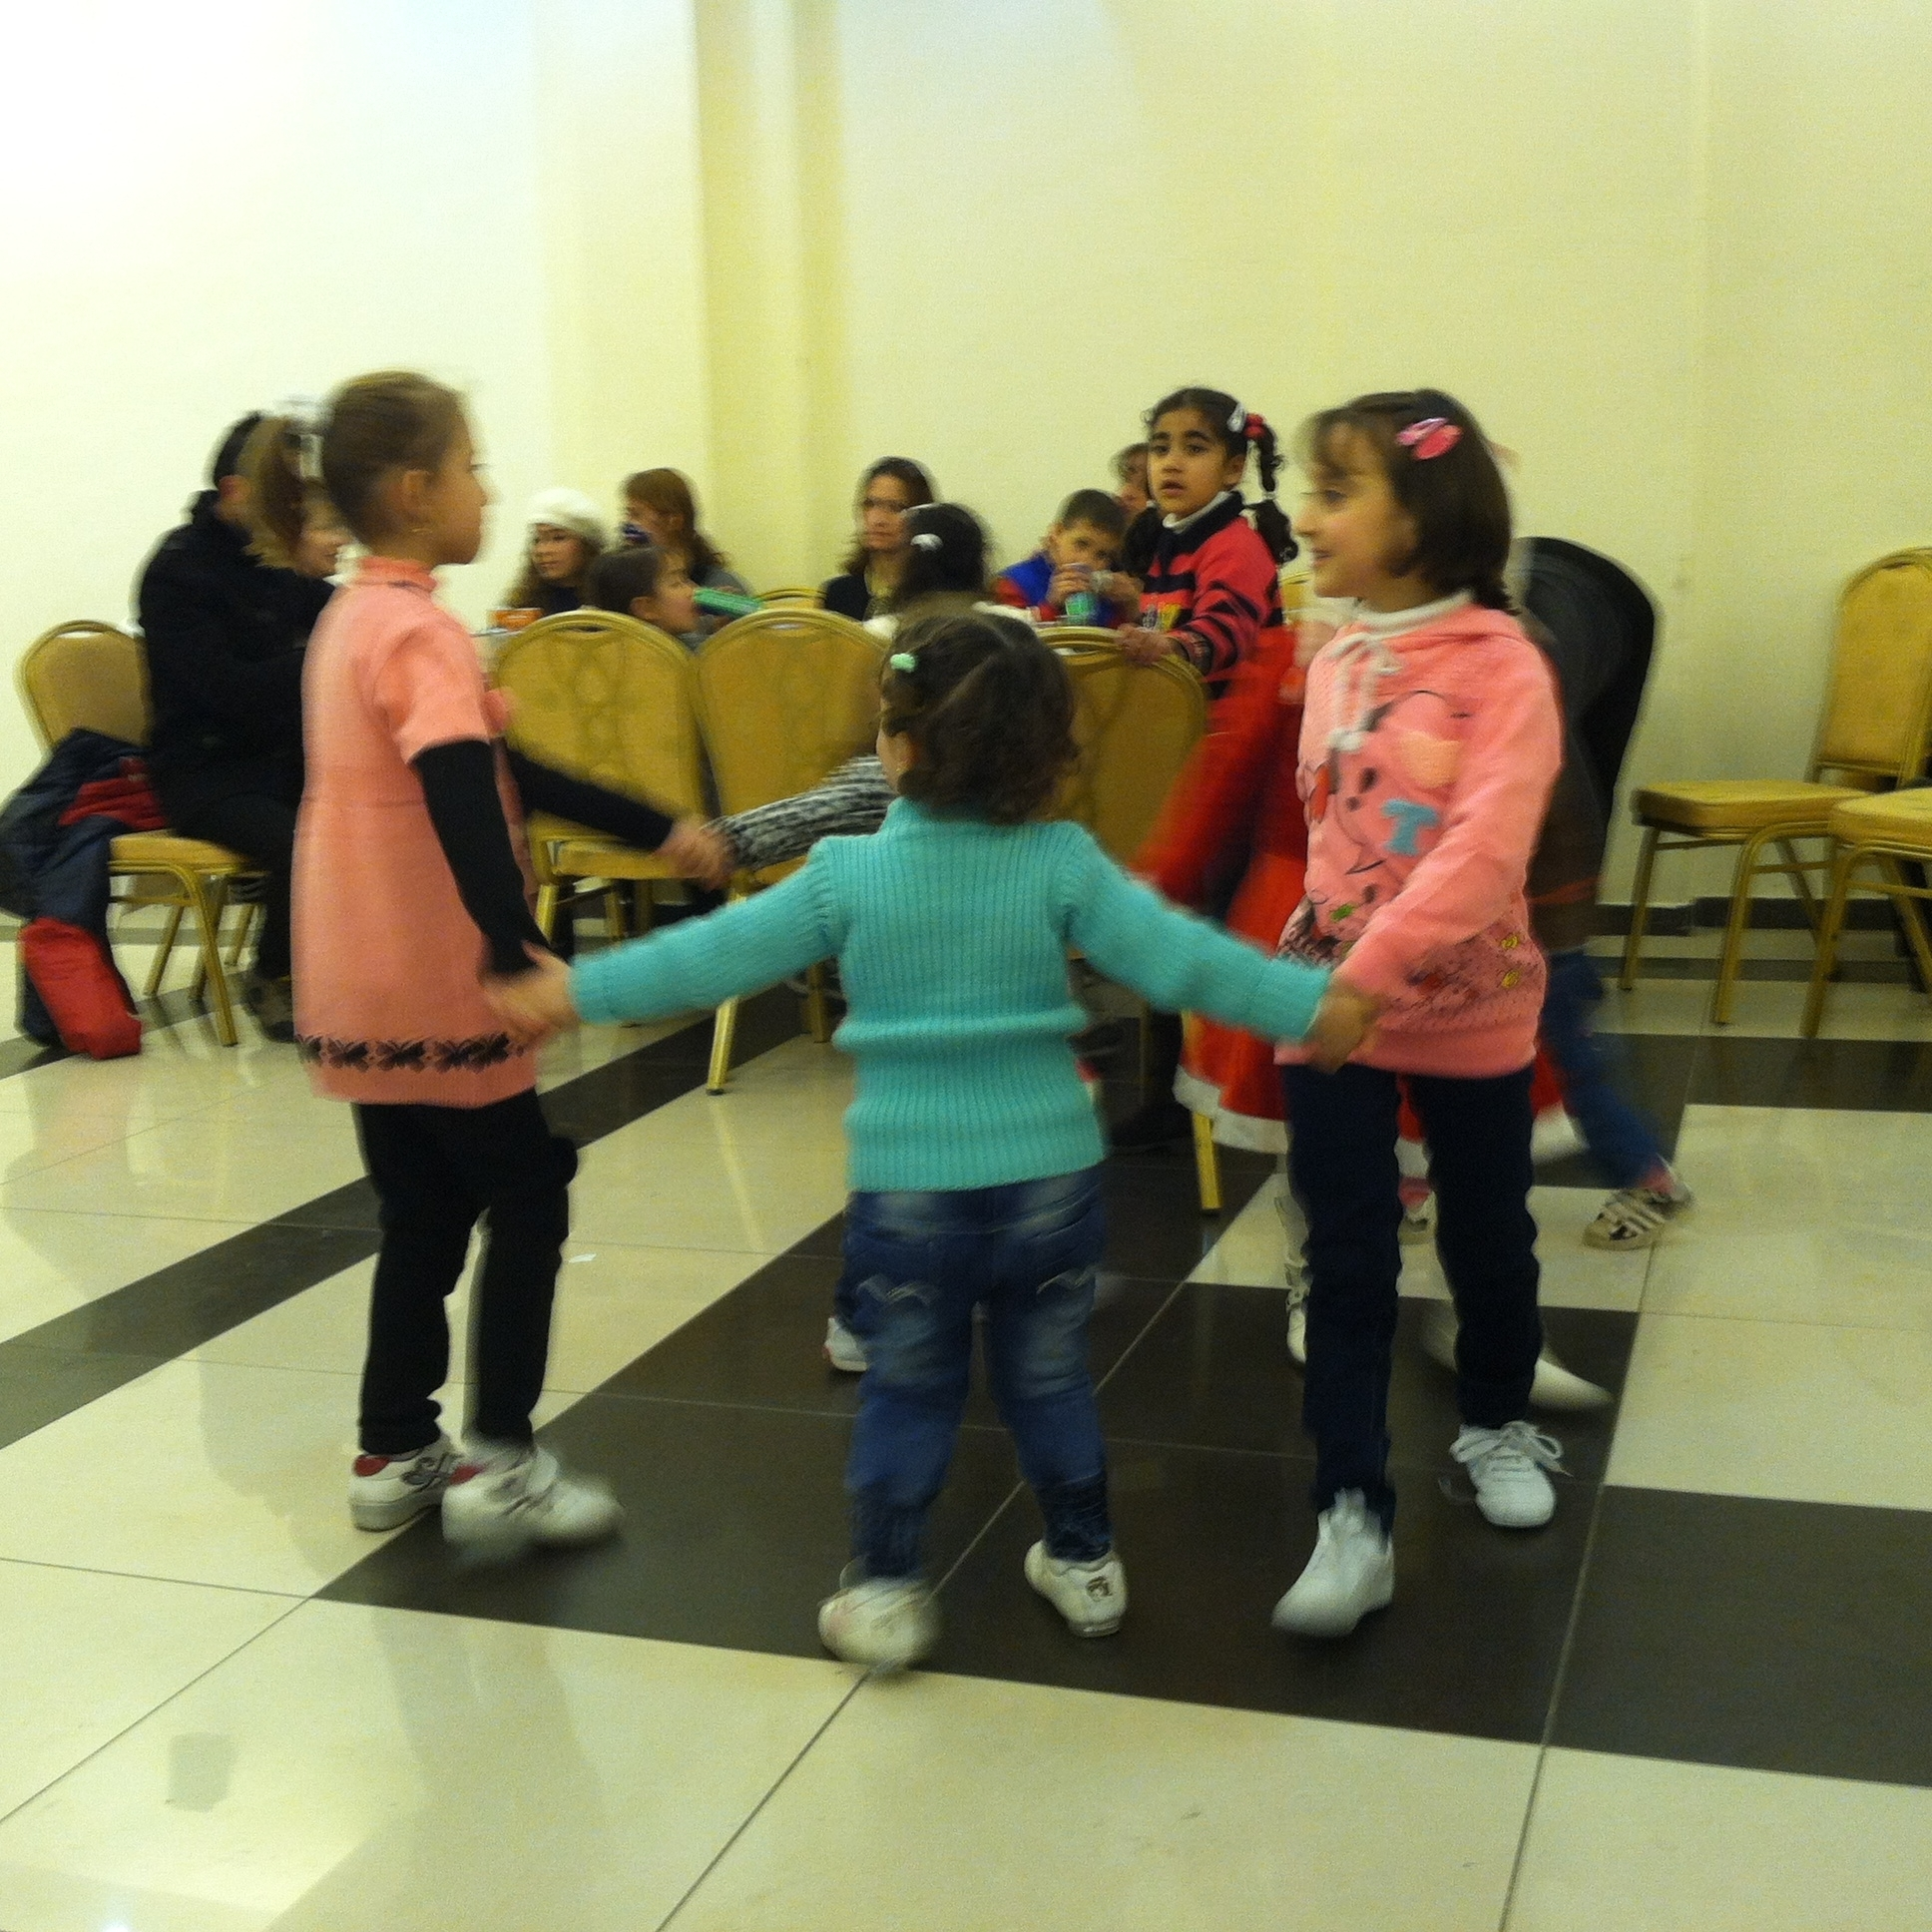 Program three in Jordan